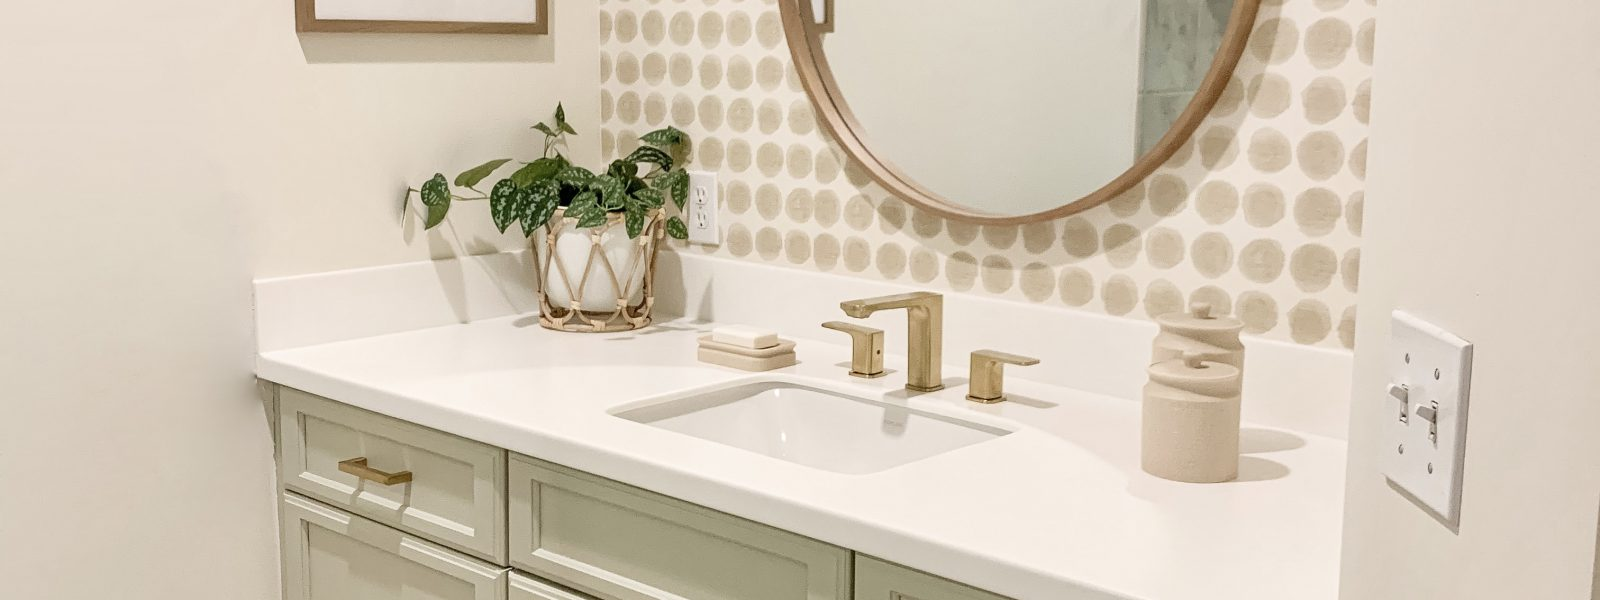 Master Bathroom Reveal- Ideas For Updating Your Dated Bathroom